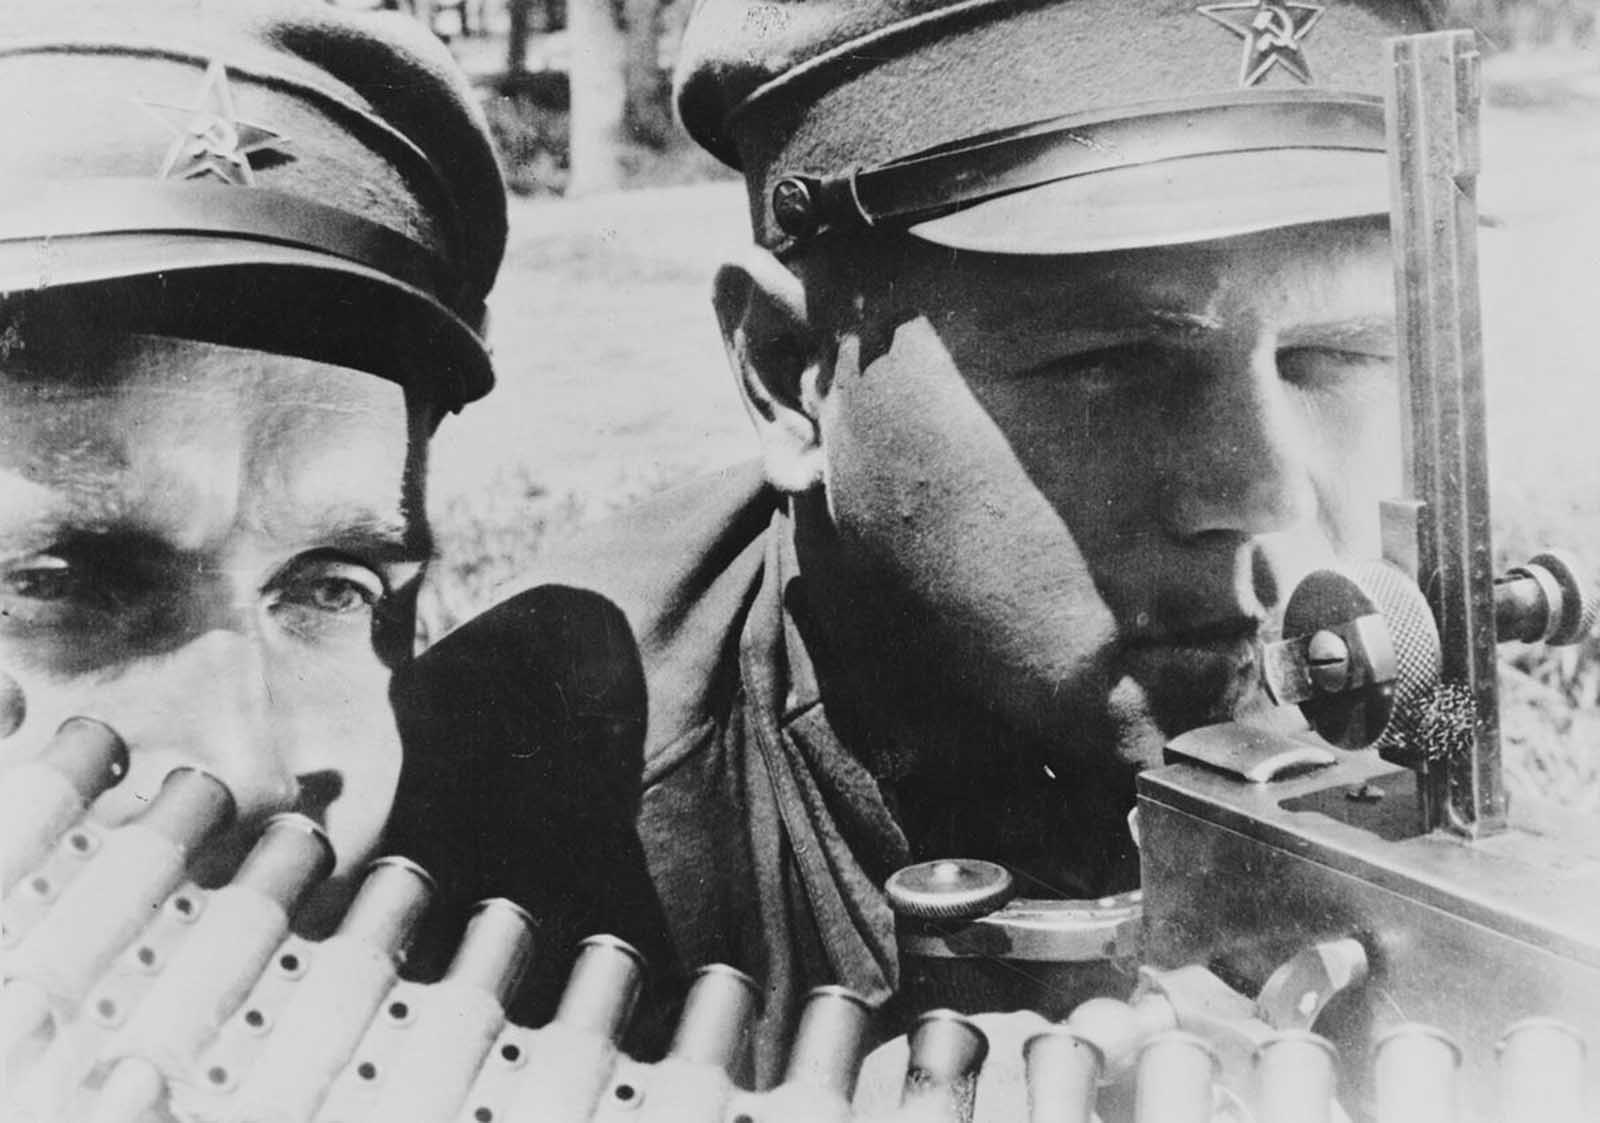 Machine gunners of the far eastern Red Army in the USSR, during the German invasion of 1941.